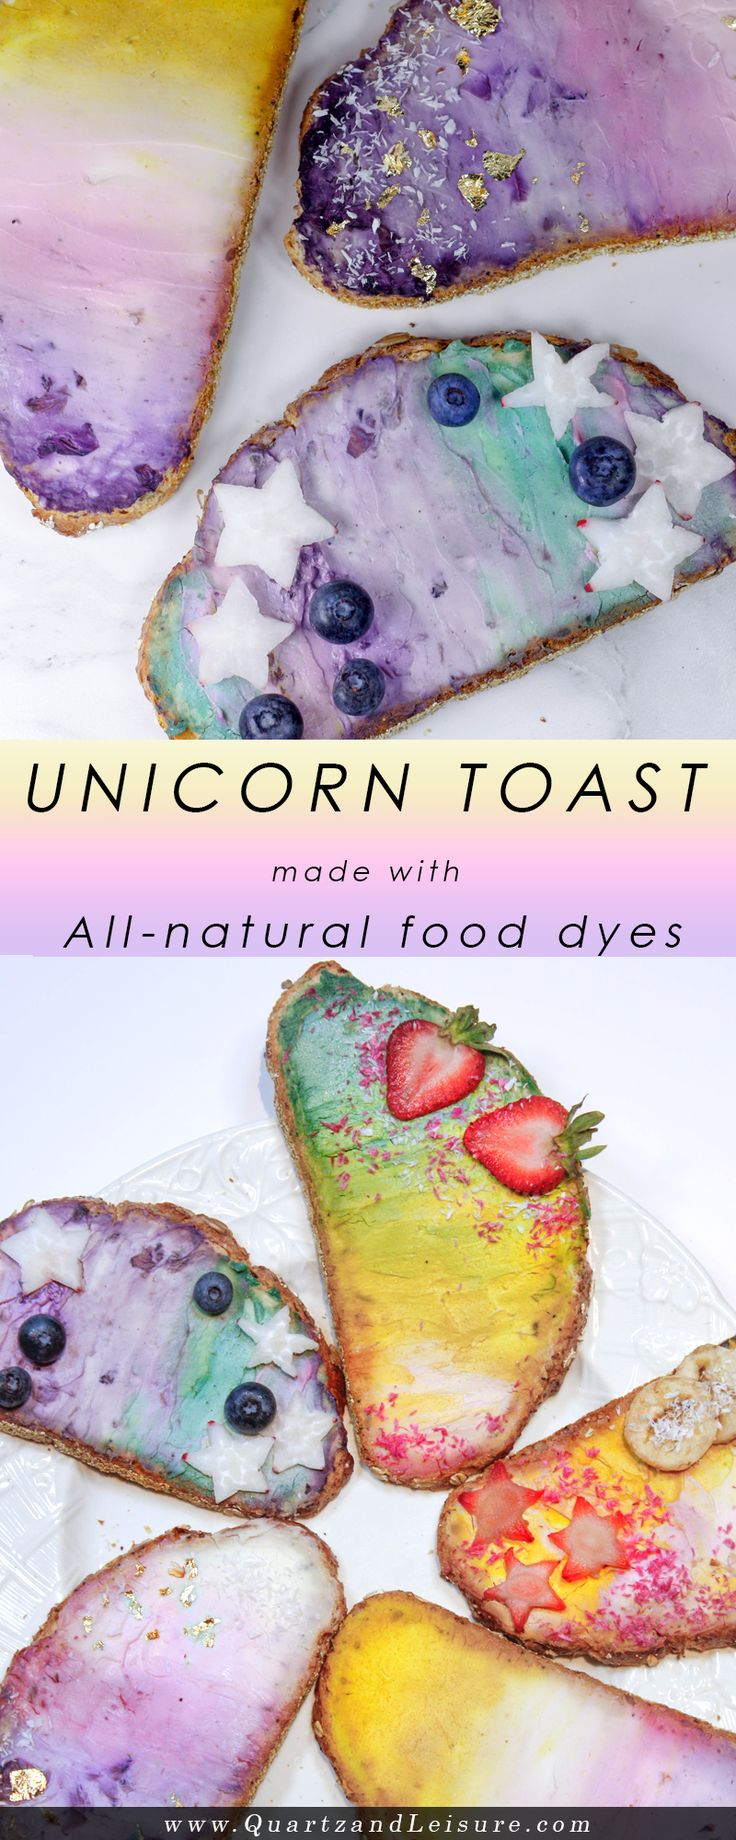 Unicorn Toast - Quartz & Leisure